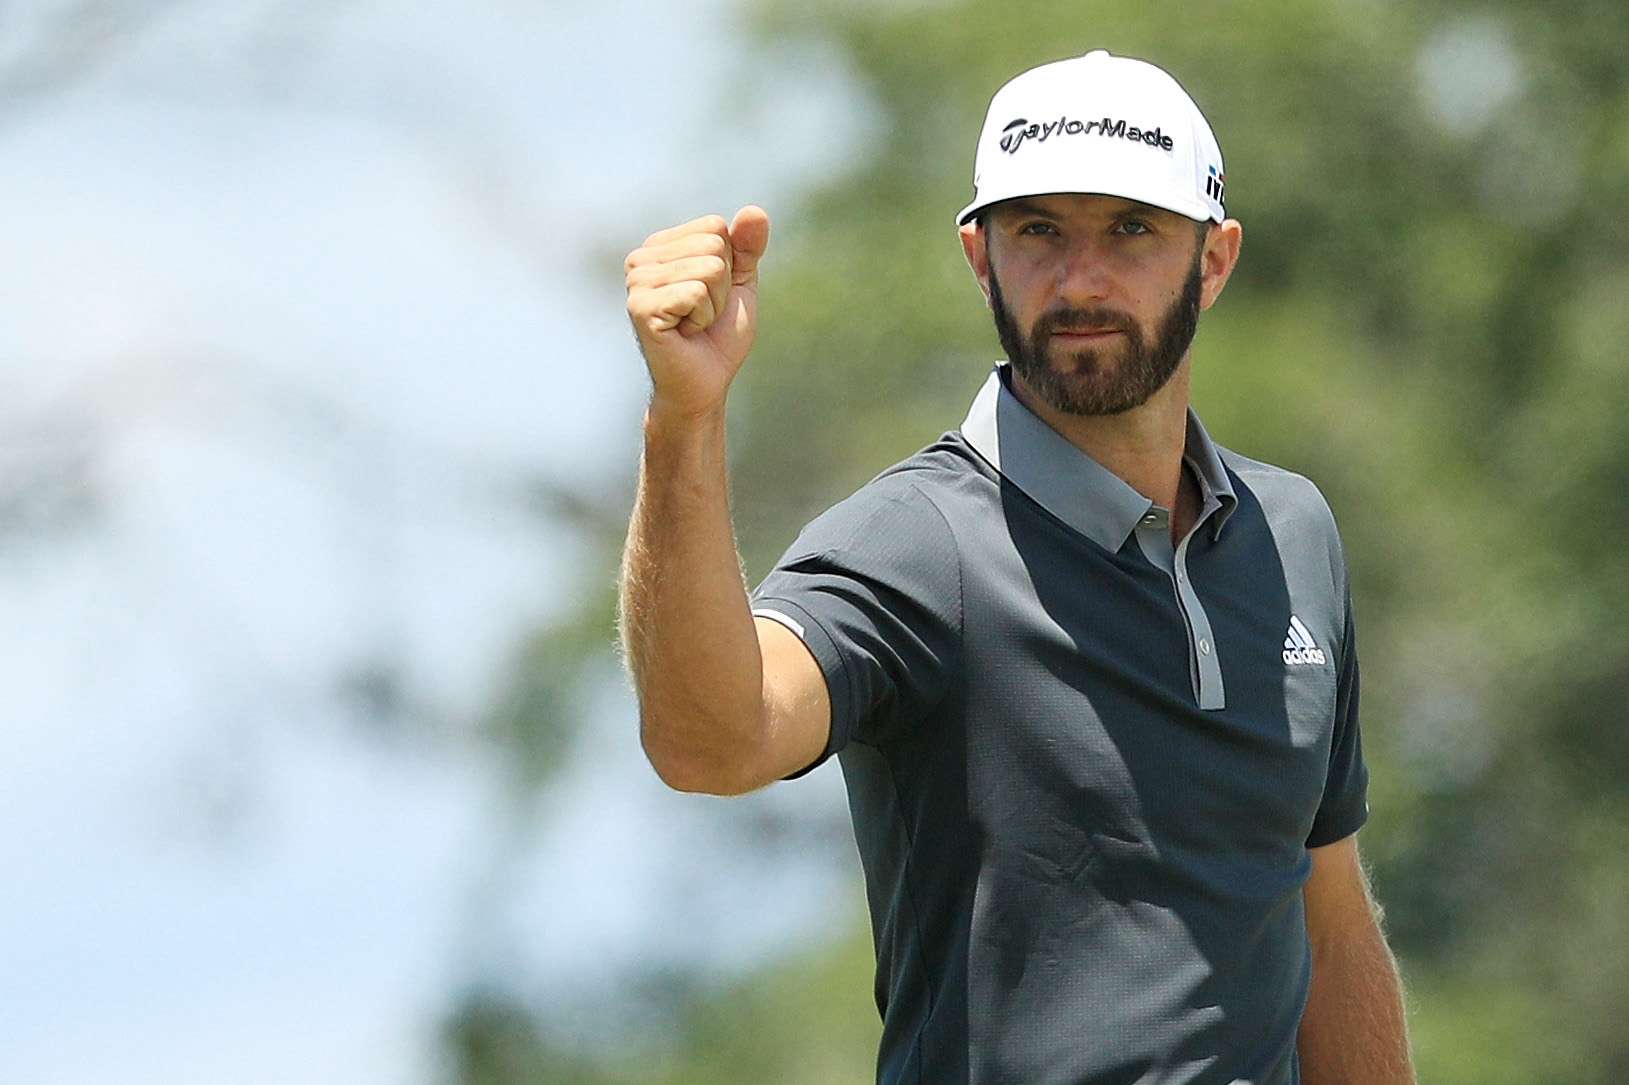 Golfer Dustin Johnson celebrates after making a birdie on the seventh hole during the second round of the 2018 U.S. Open at Shinnecock Hills Golf Club on June 15, 2018, in Southampton, New York.